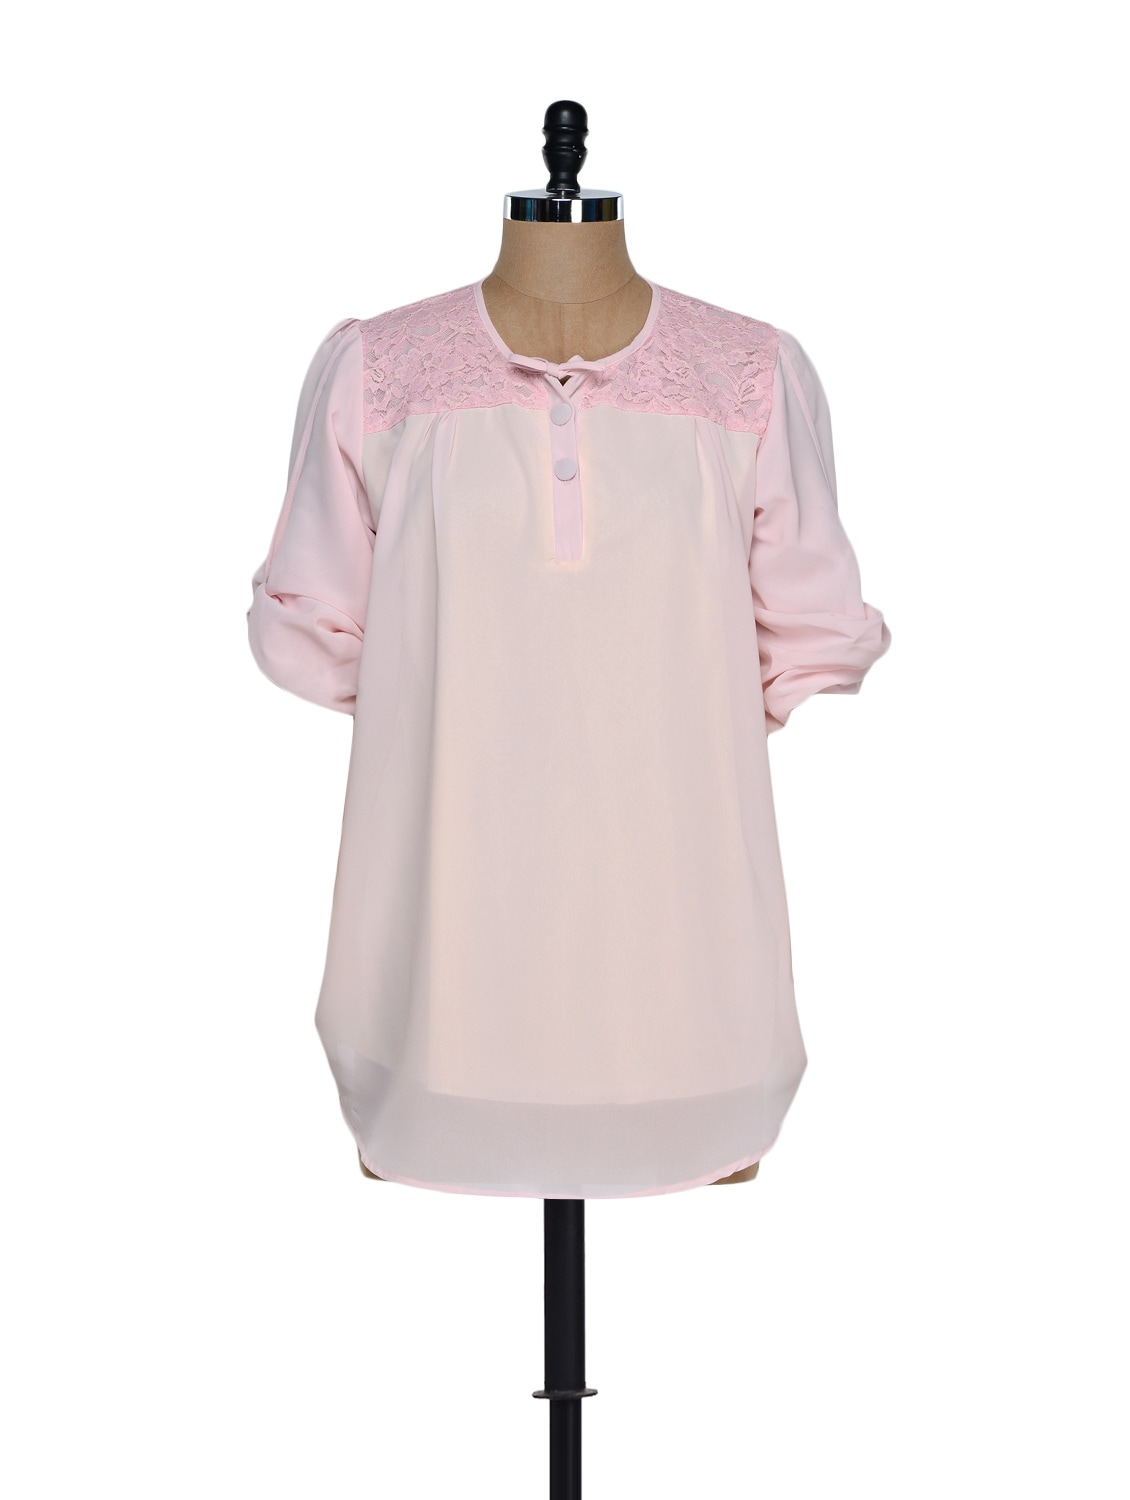 Trendy Baby Pink Georgette Top With A Bow Trim - Being Fab